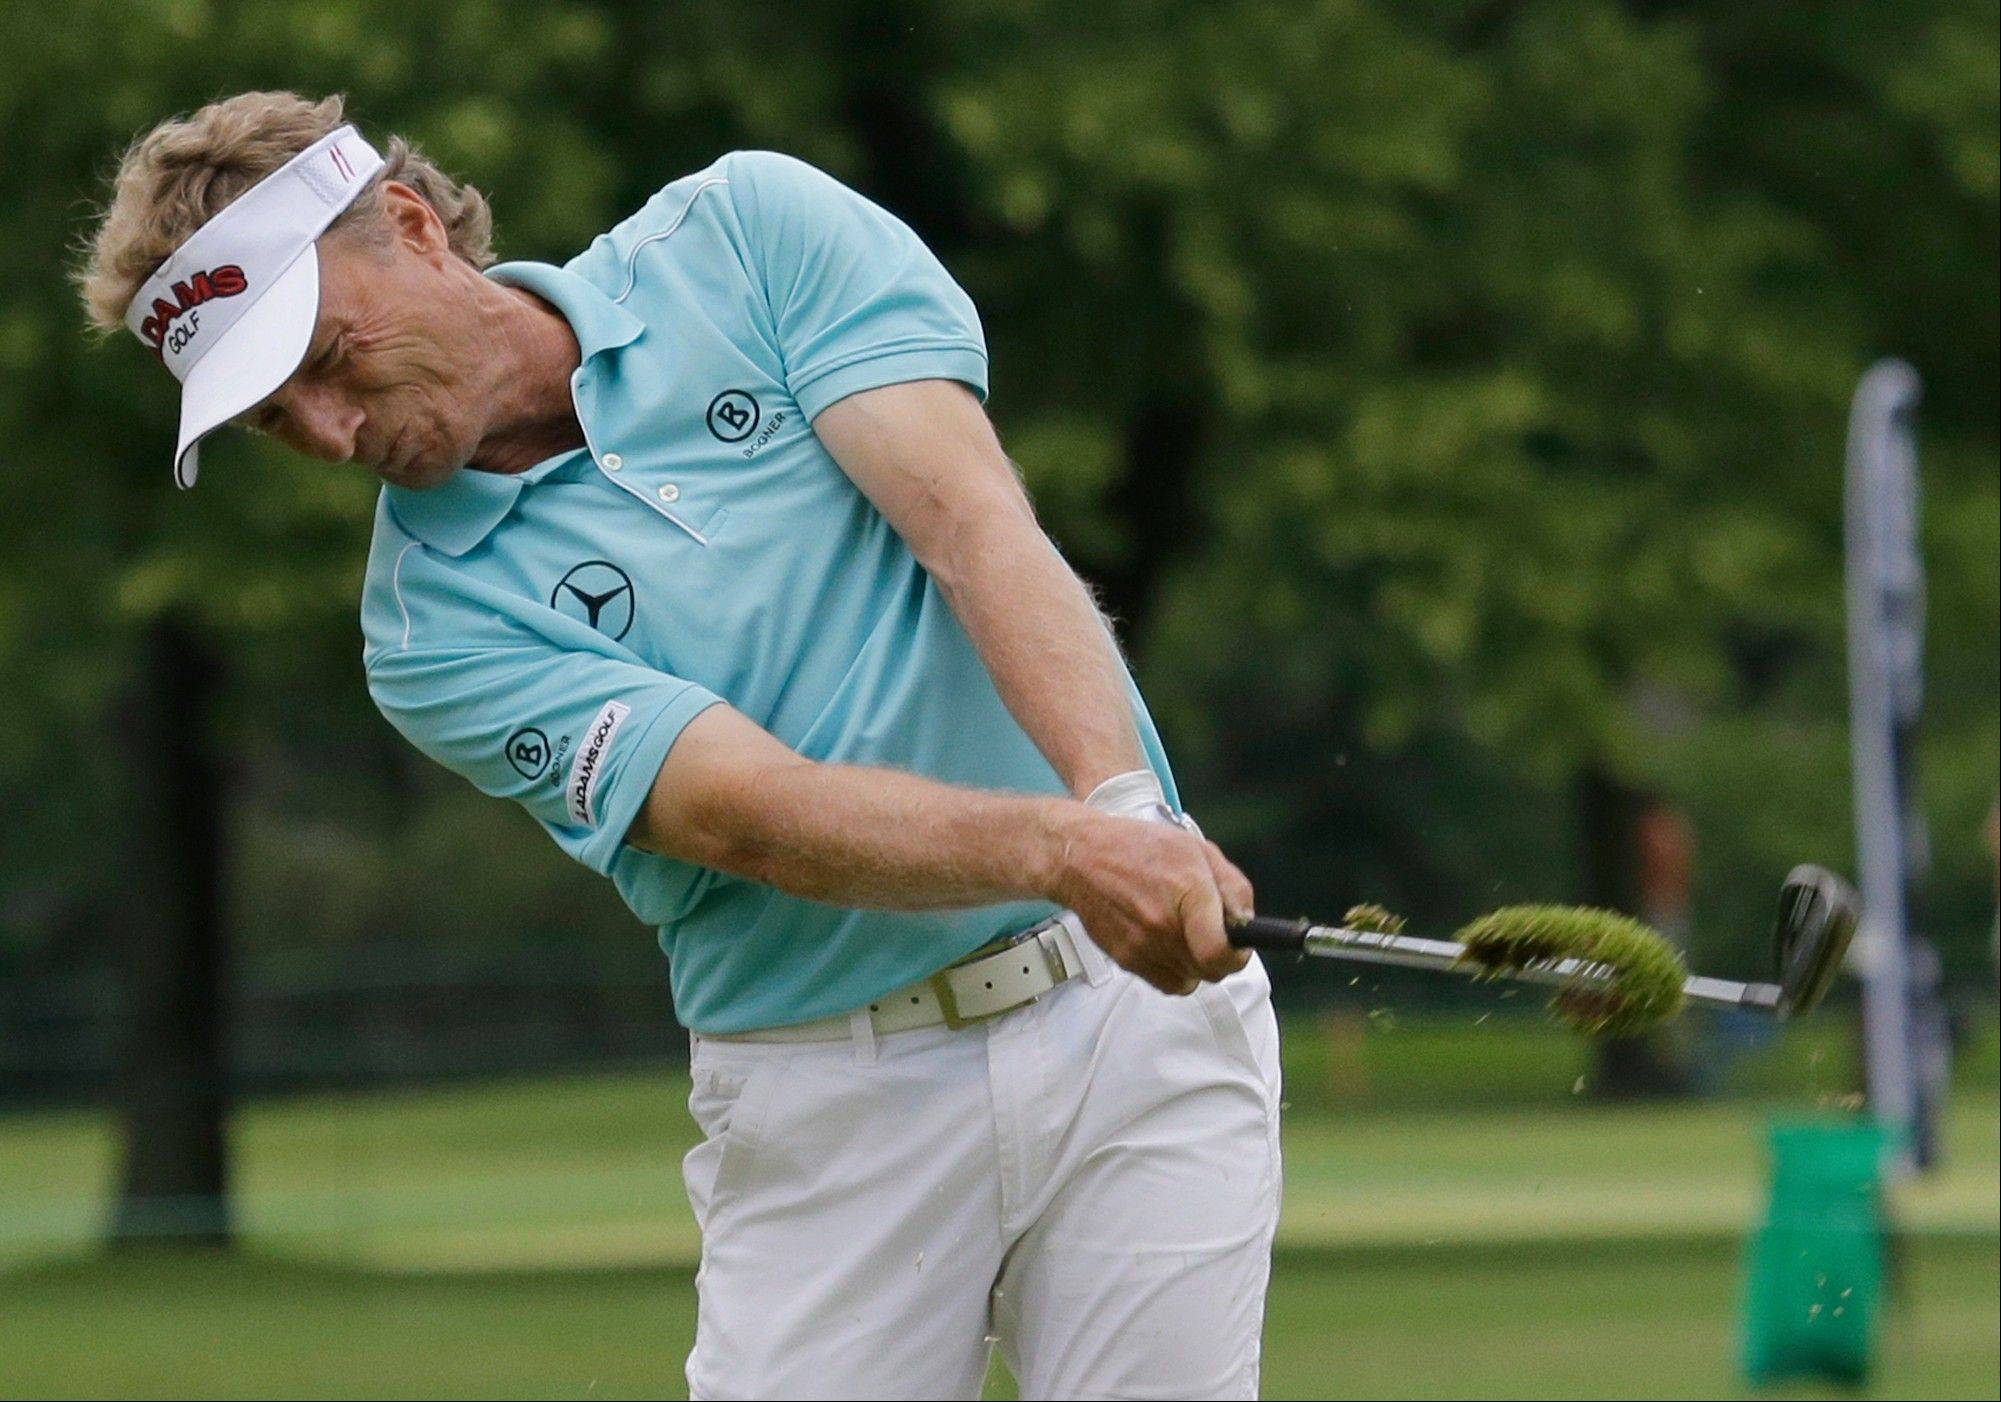 Langer stays hot, leads Champions Tour event